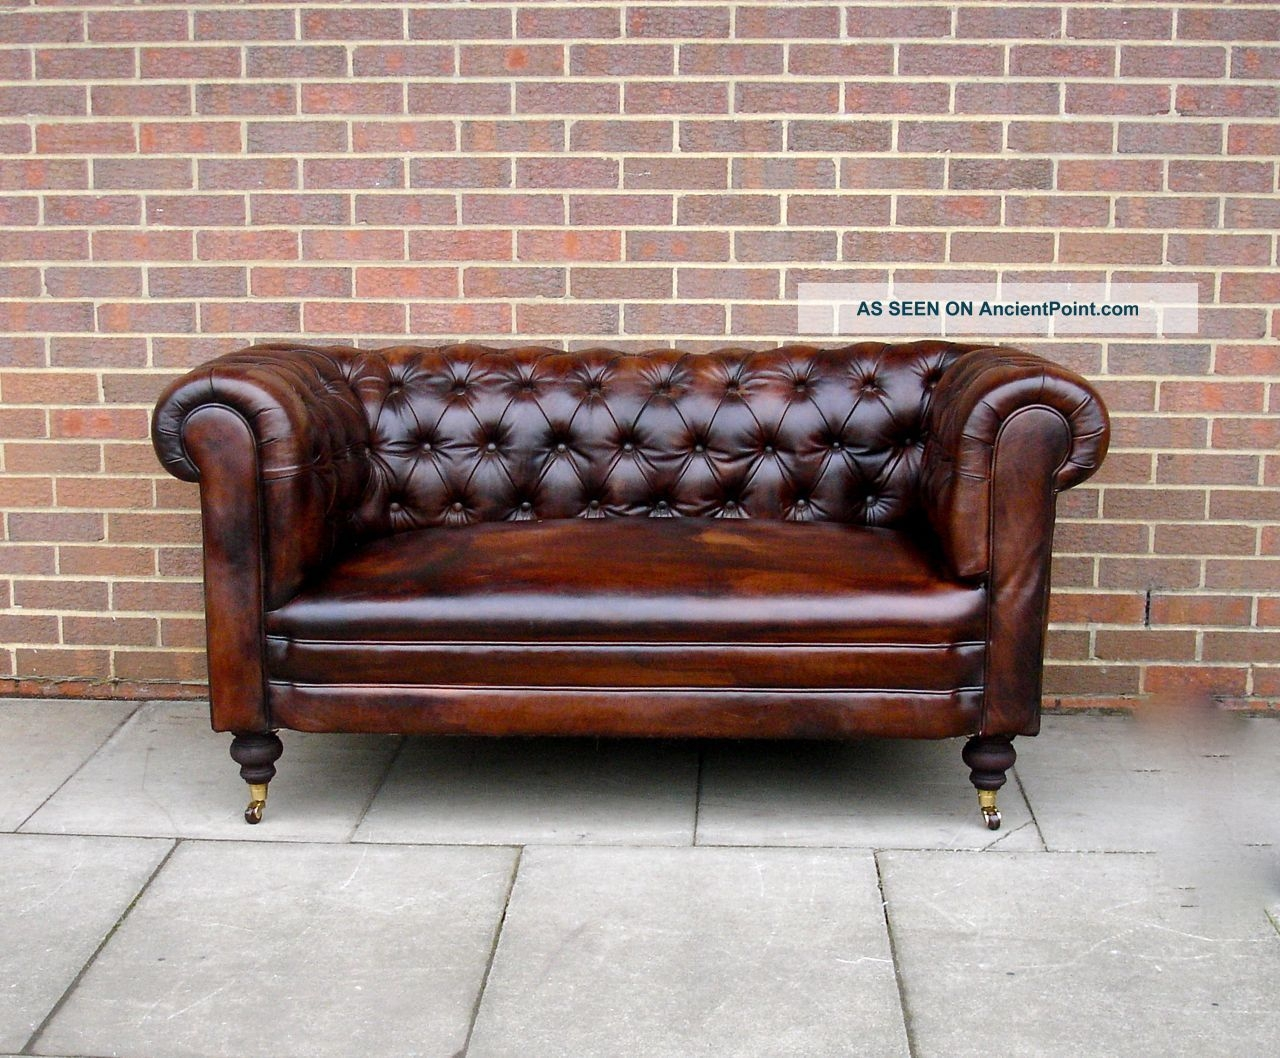 Antique 19thc Leather Chesterfield Sofa Drop Arm Hand Full Pertaining To Antique Sofa Chairs (View 7 of 15)